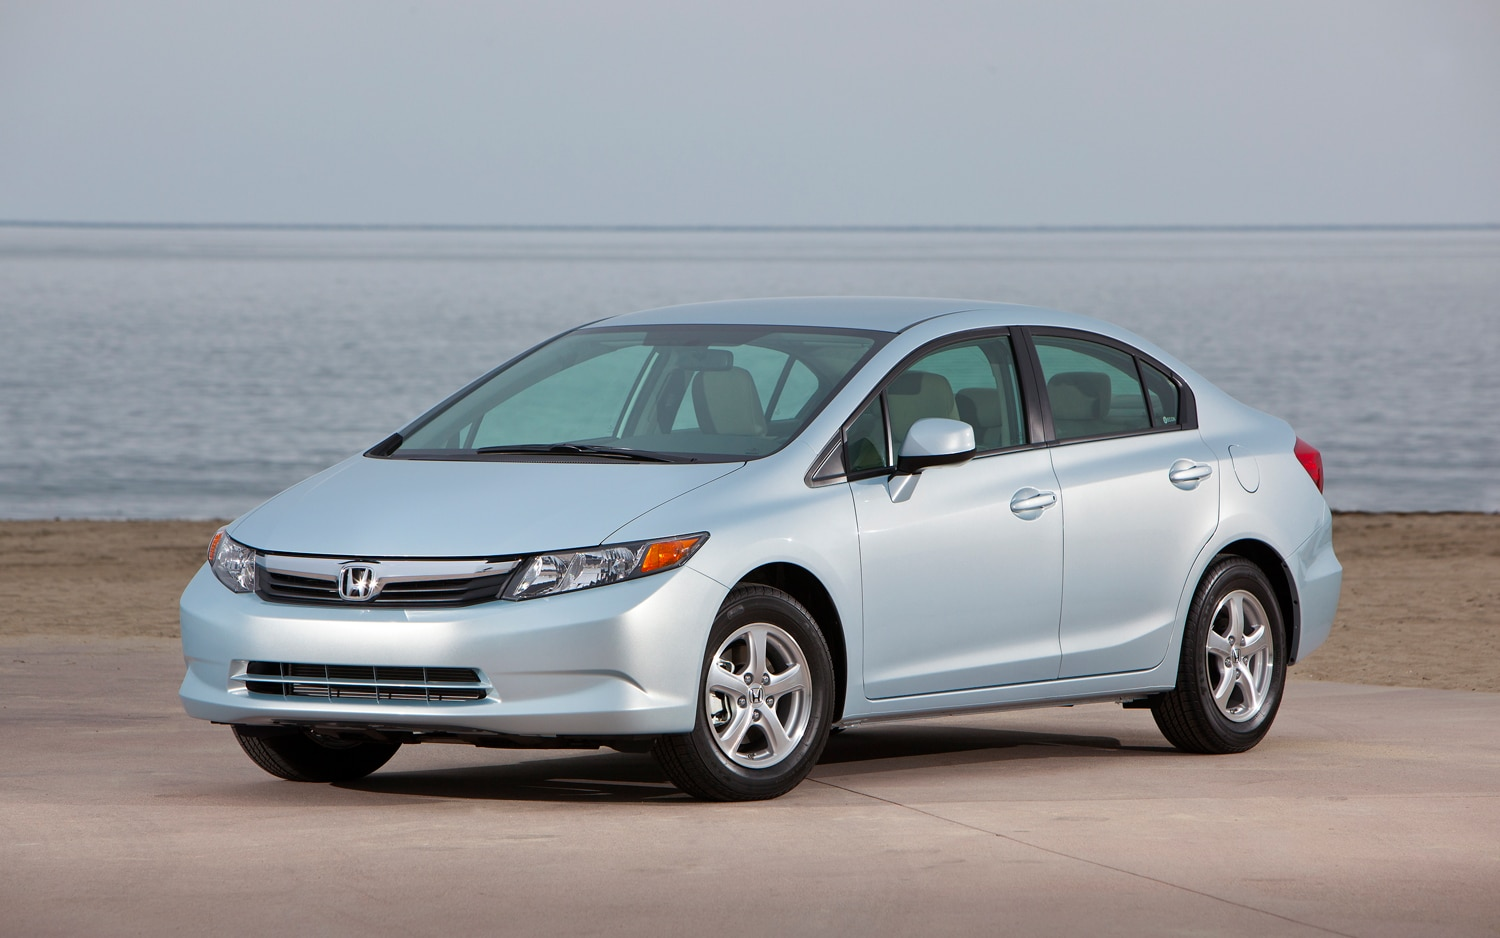 2012 Honda Civic Natural Gas Front Left Side View1